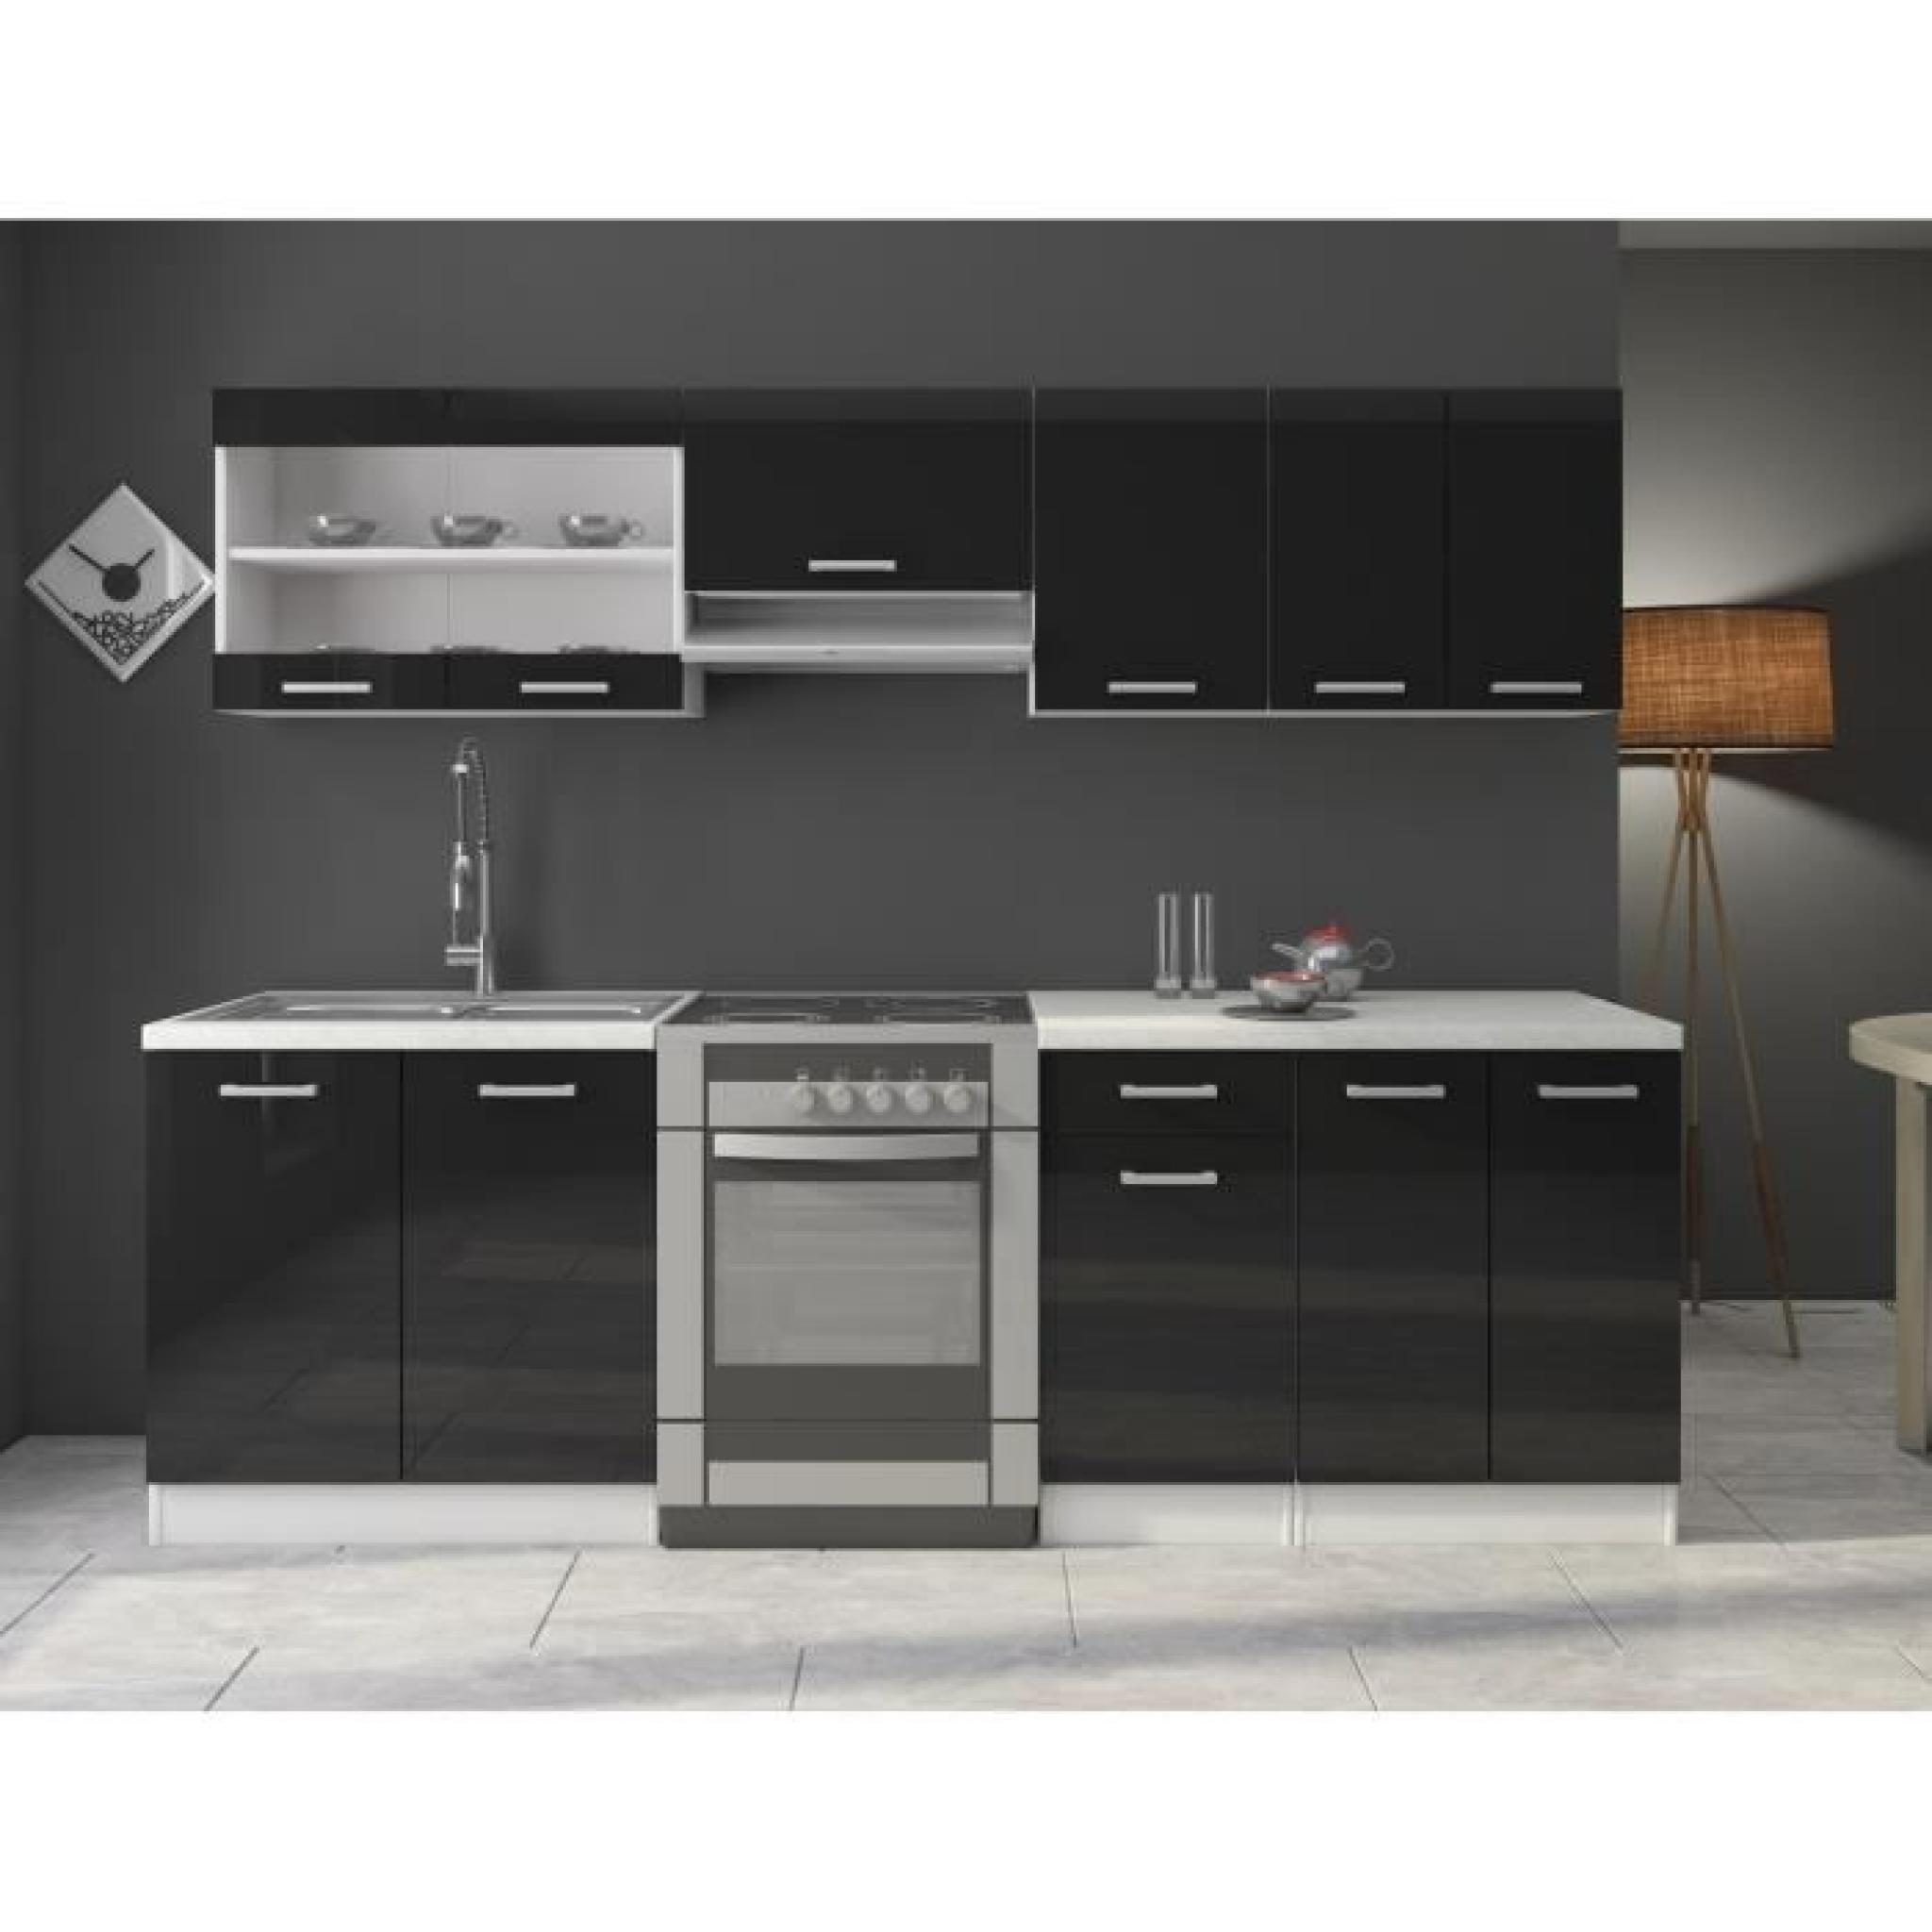 jasny cuisine compl te 2m40 noir laqu achat vente. Black Bedroom Furniture Sets. Home Design Ideas